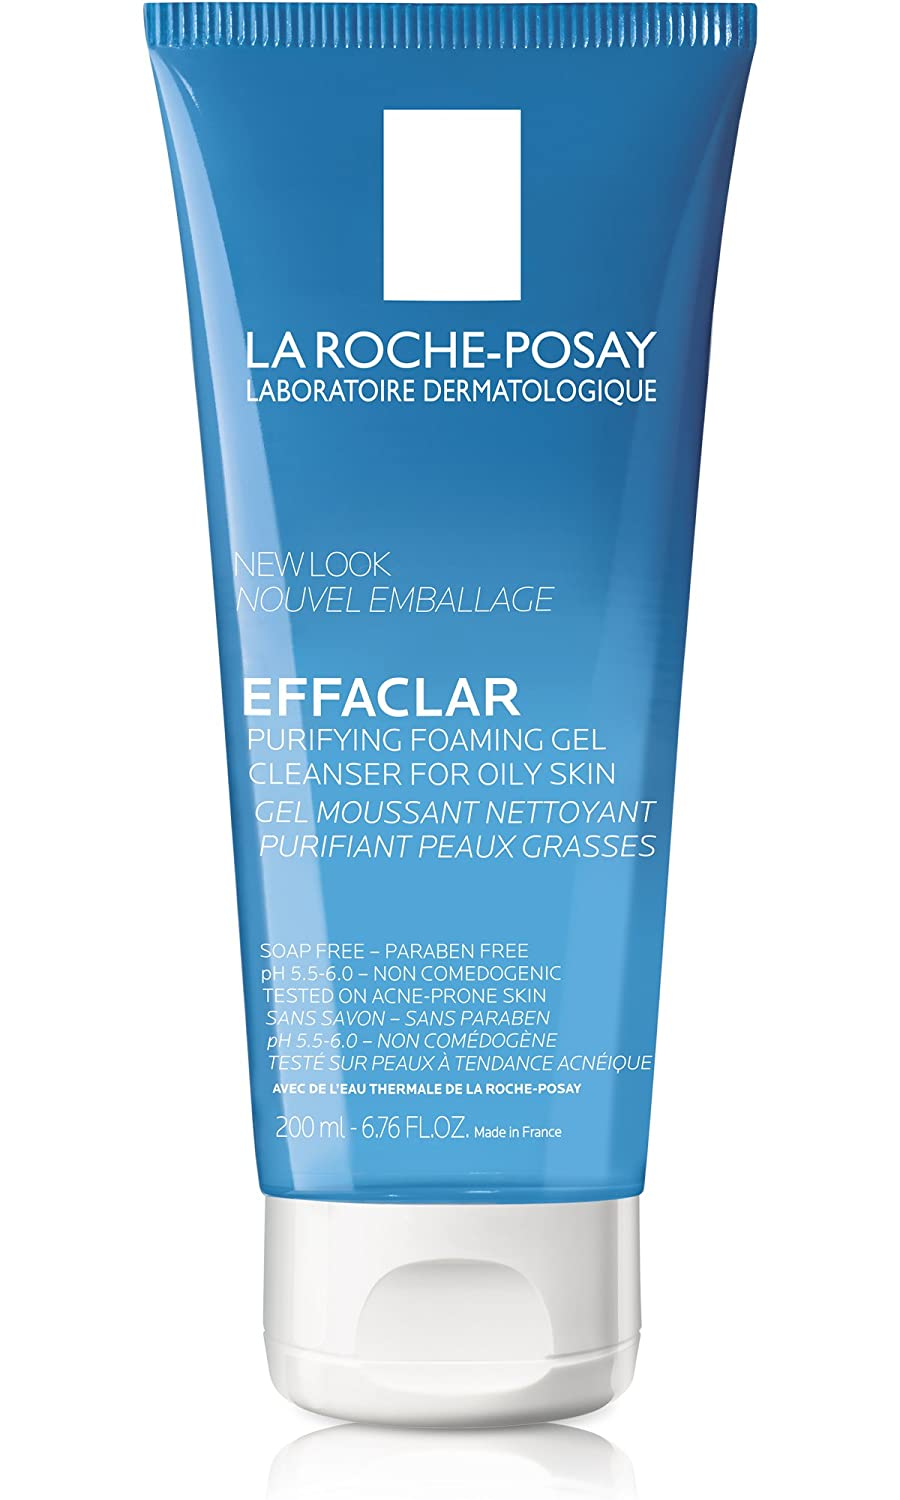 Image result for free download image La Roche-Posay Effaclar Purifying Foaming Gel Cleanser for Oily Skin